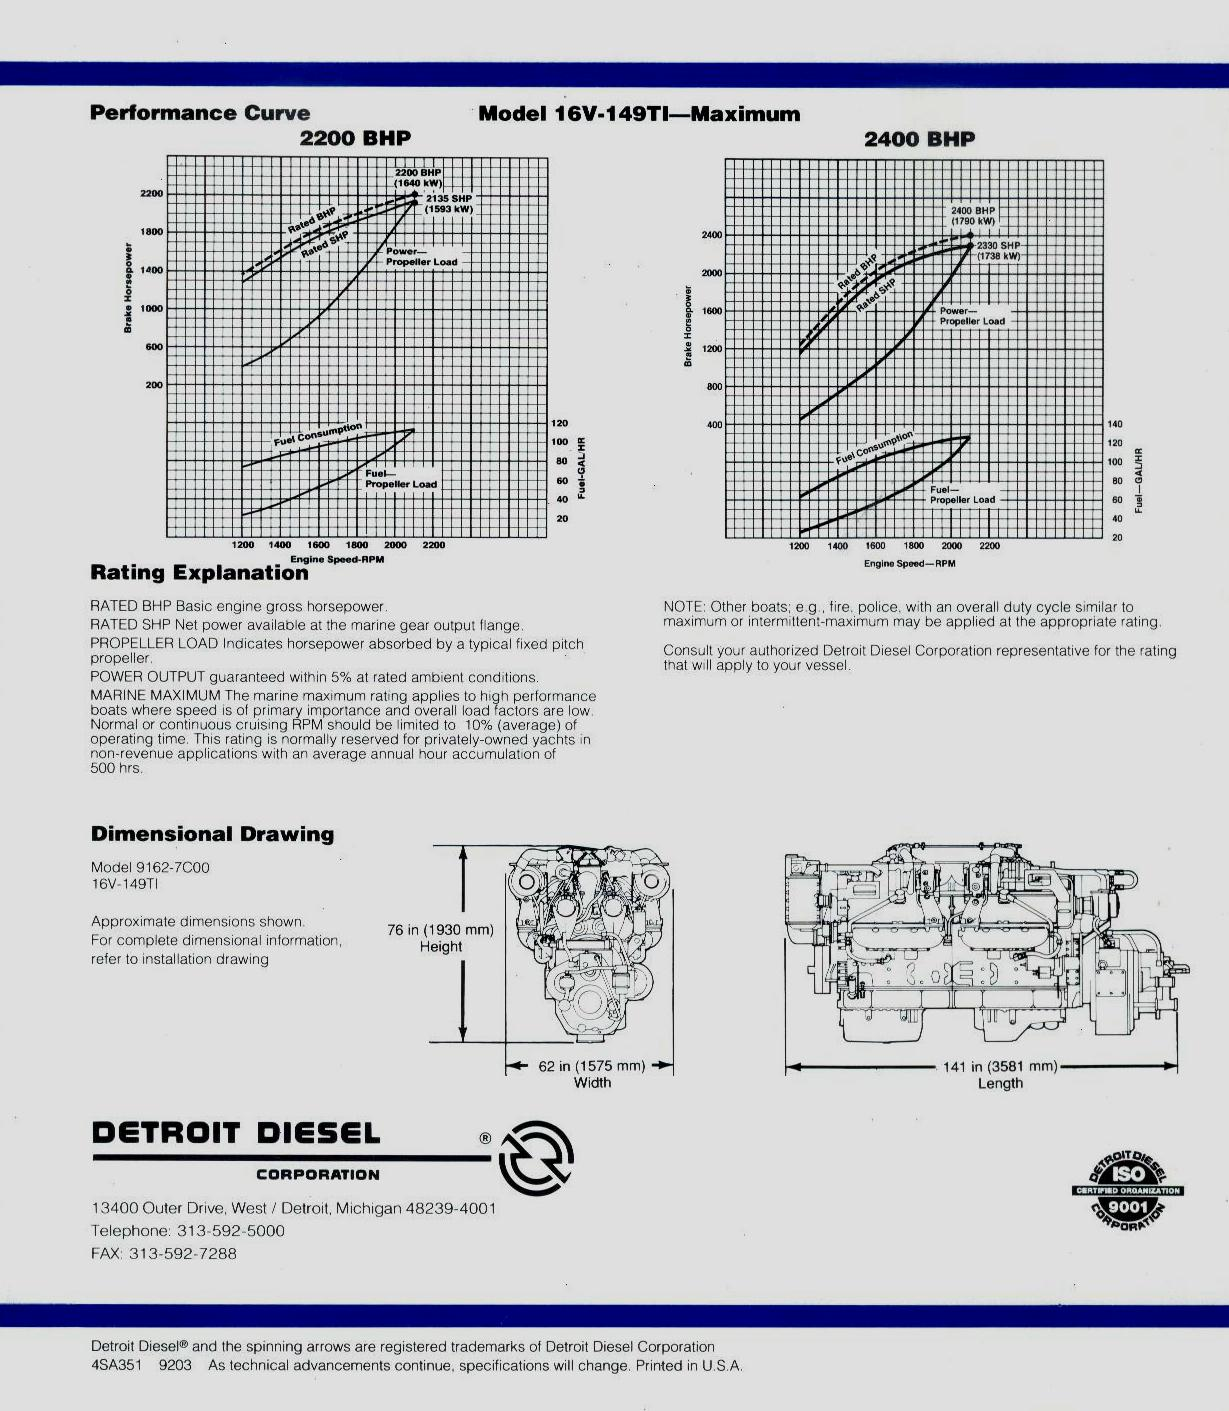 2008 Nissan Xterra Turn Signal Switch Removal Diagram in addition Wiring Diagram For Furnace Gas Valve likewise 2005 Detroit Series 60 Ecm Wiring Diagram further Series 60 Engine Oil Temperature Sensor additionally Detroit Diesel Series 60 Ecm Wiring Diagram. on ddec v wiring diagram